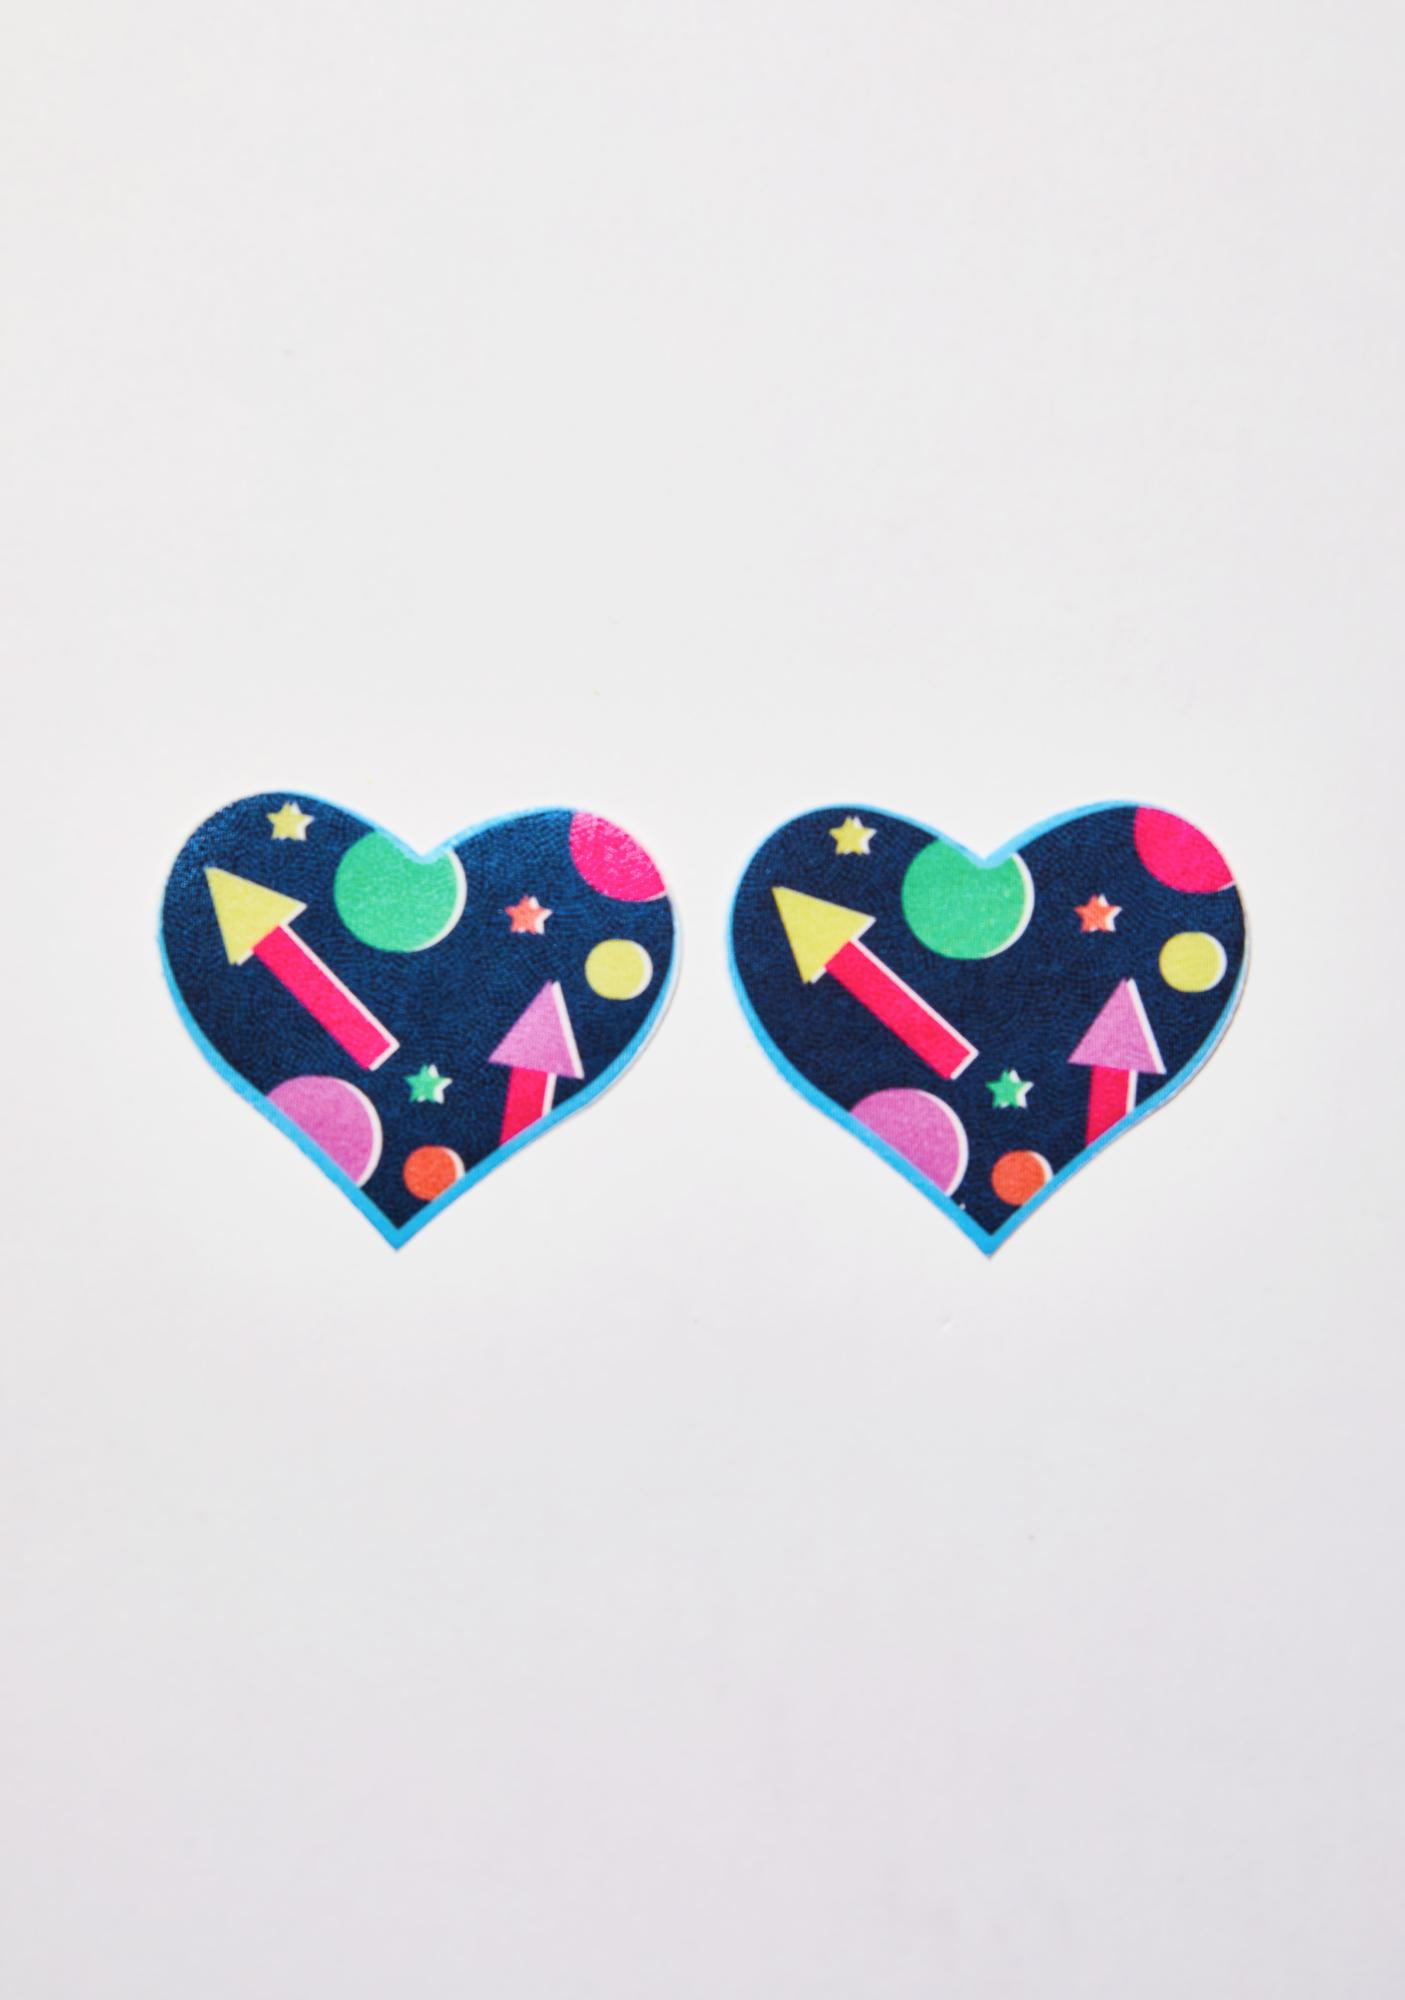 Pastease x Club Exx Shapes Heart Pasties